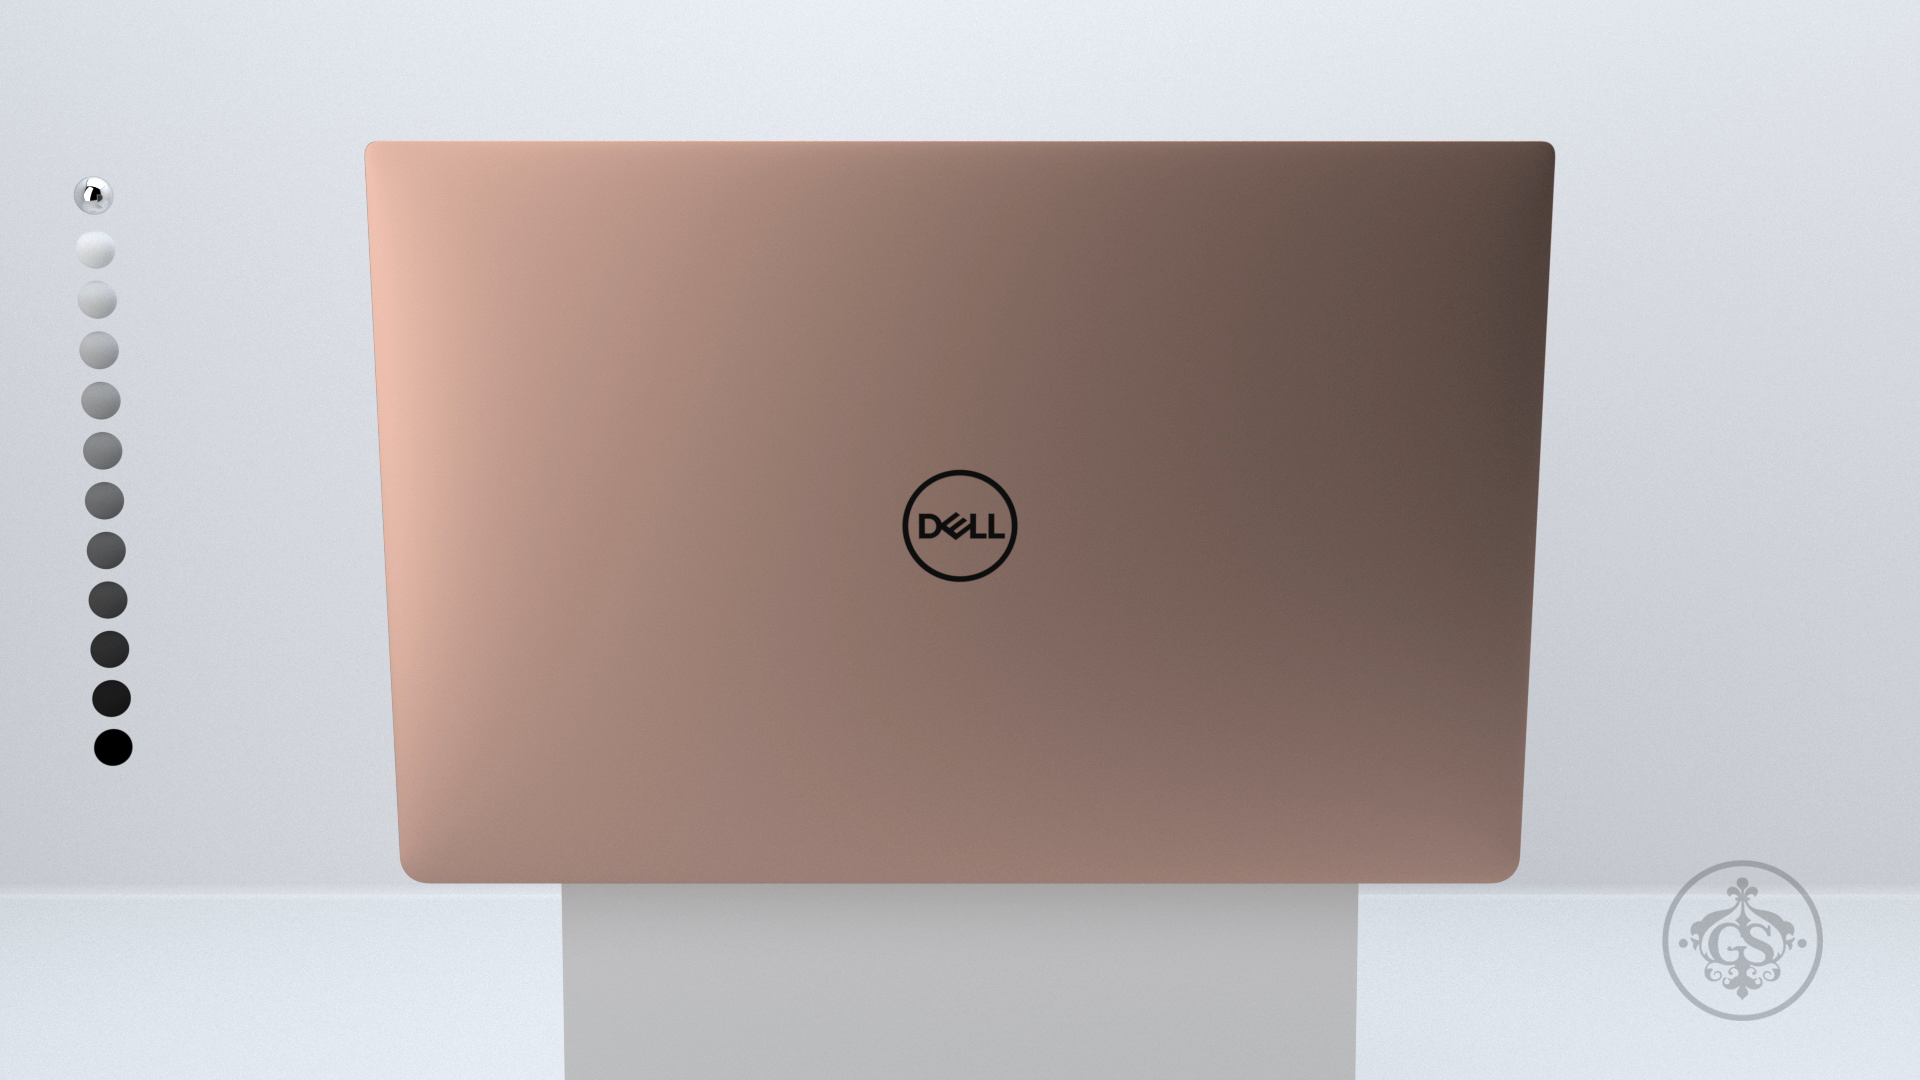 gs_dell_004.png